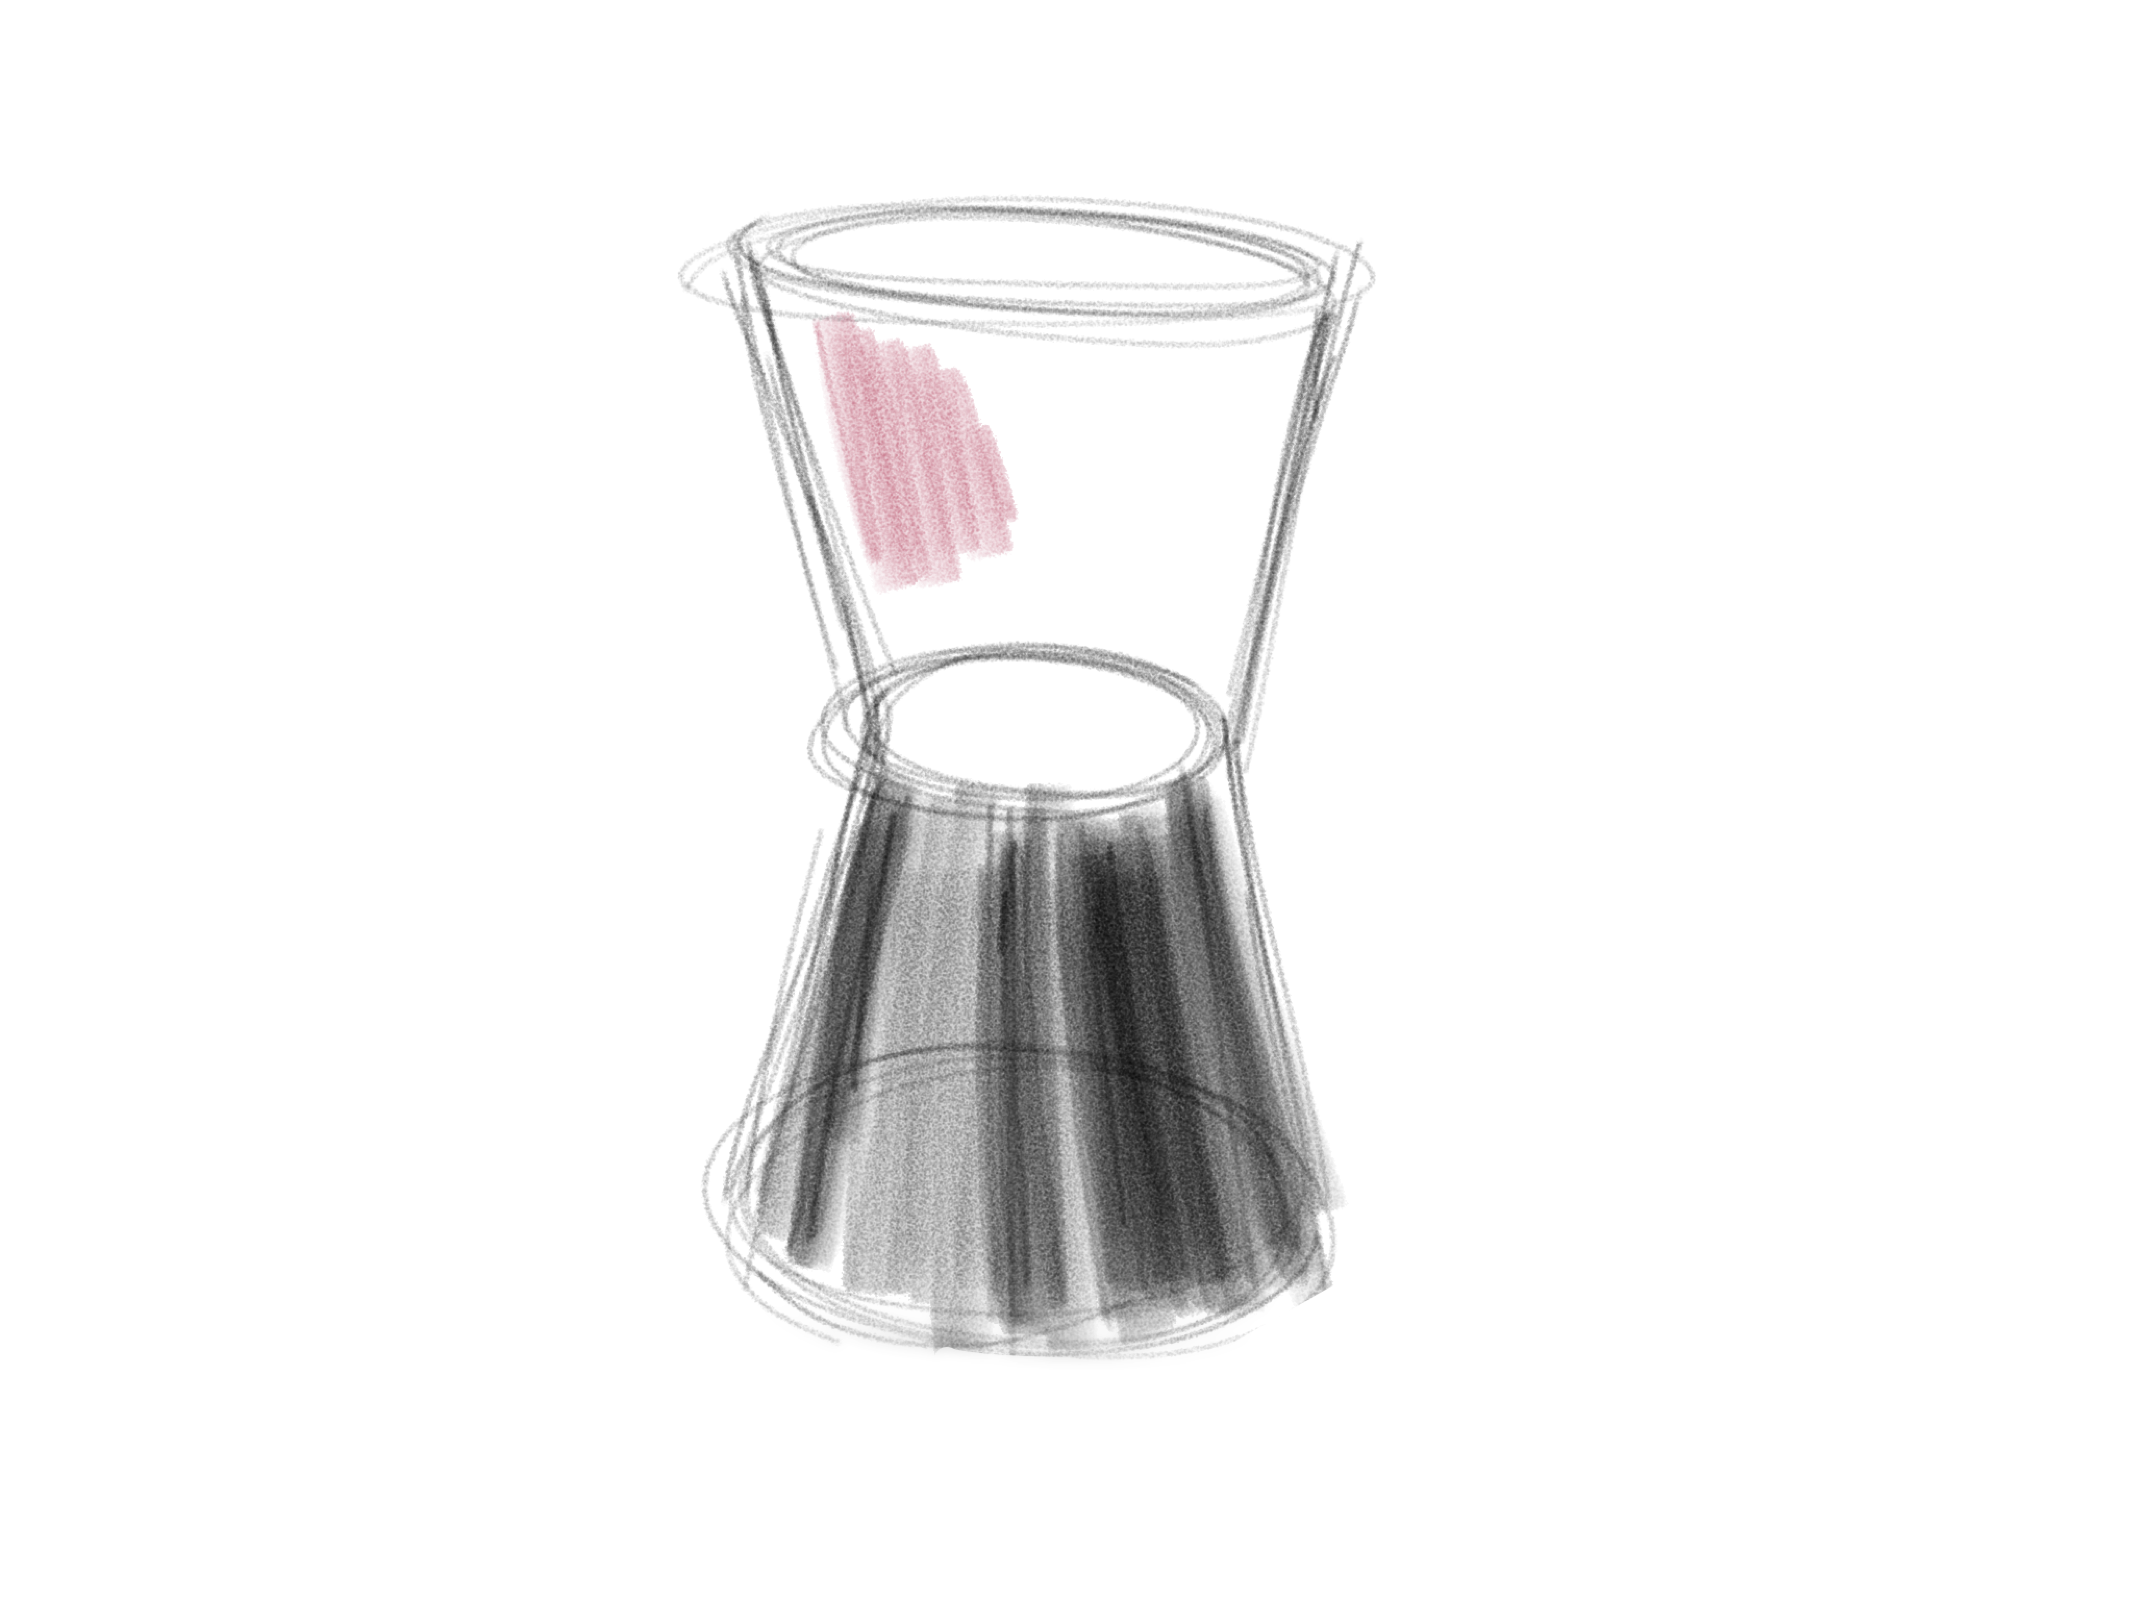 Concept 3: an hourglass